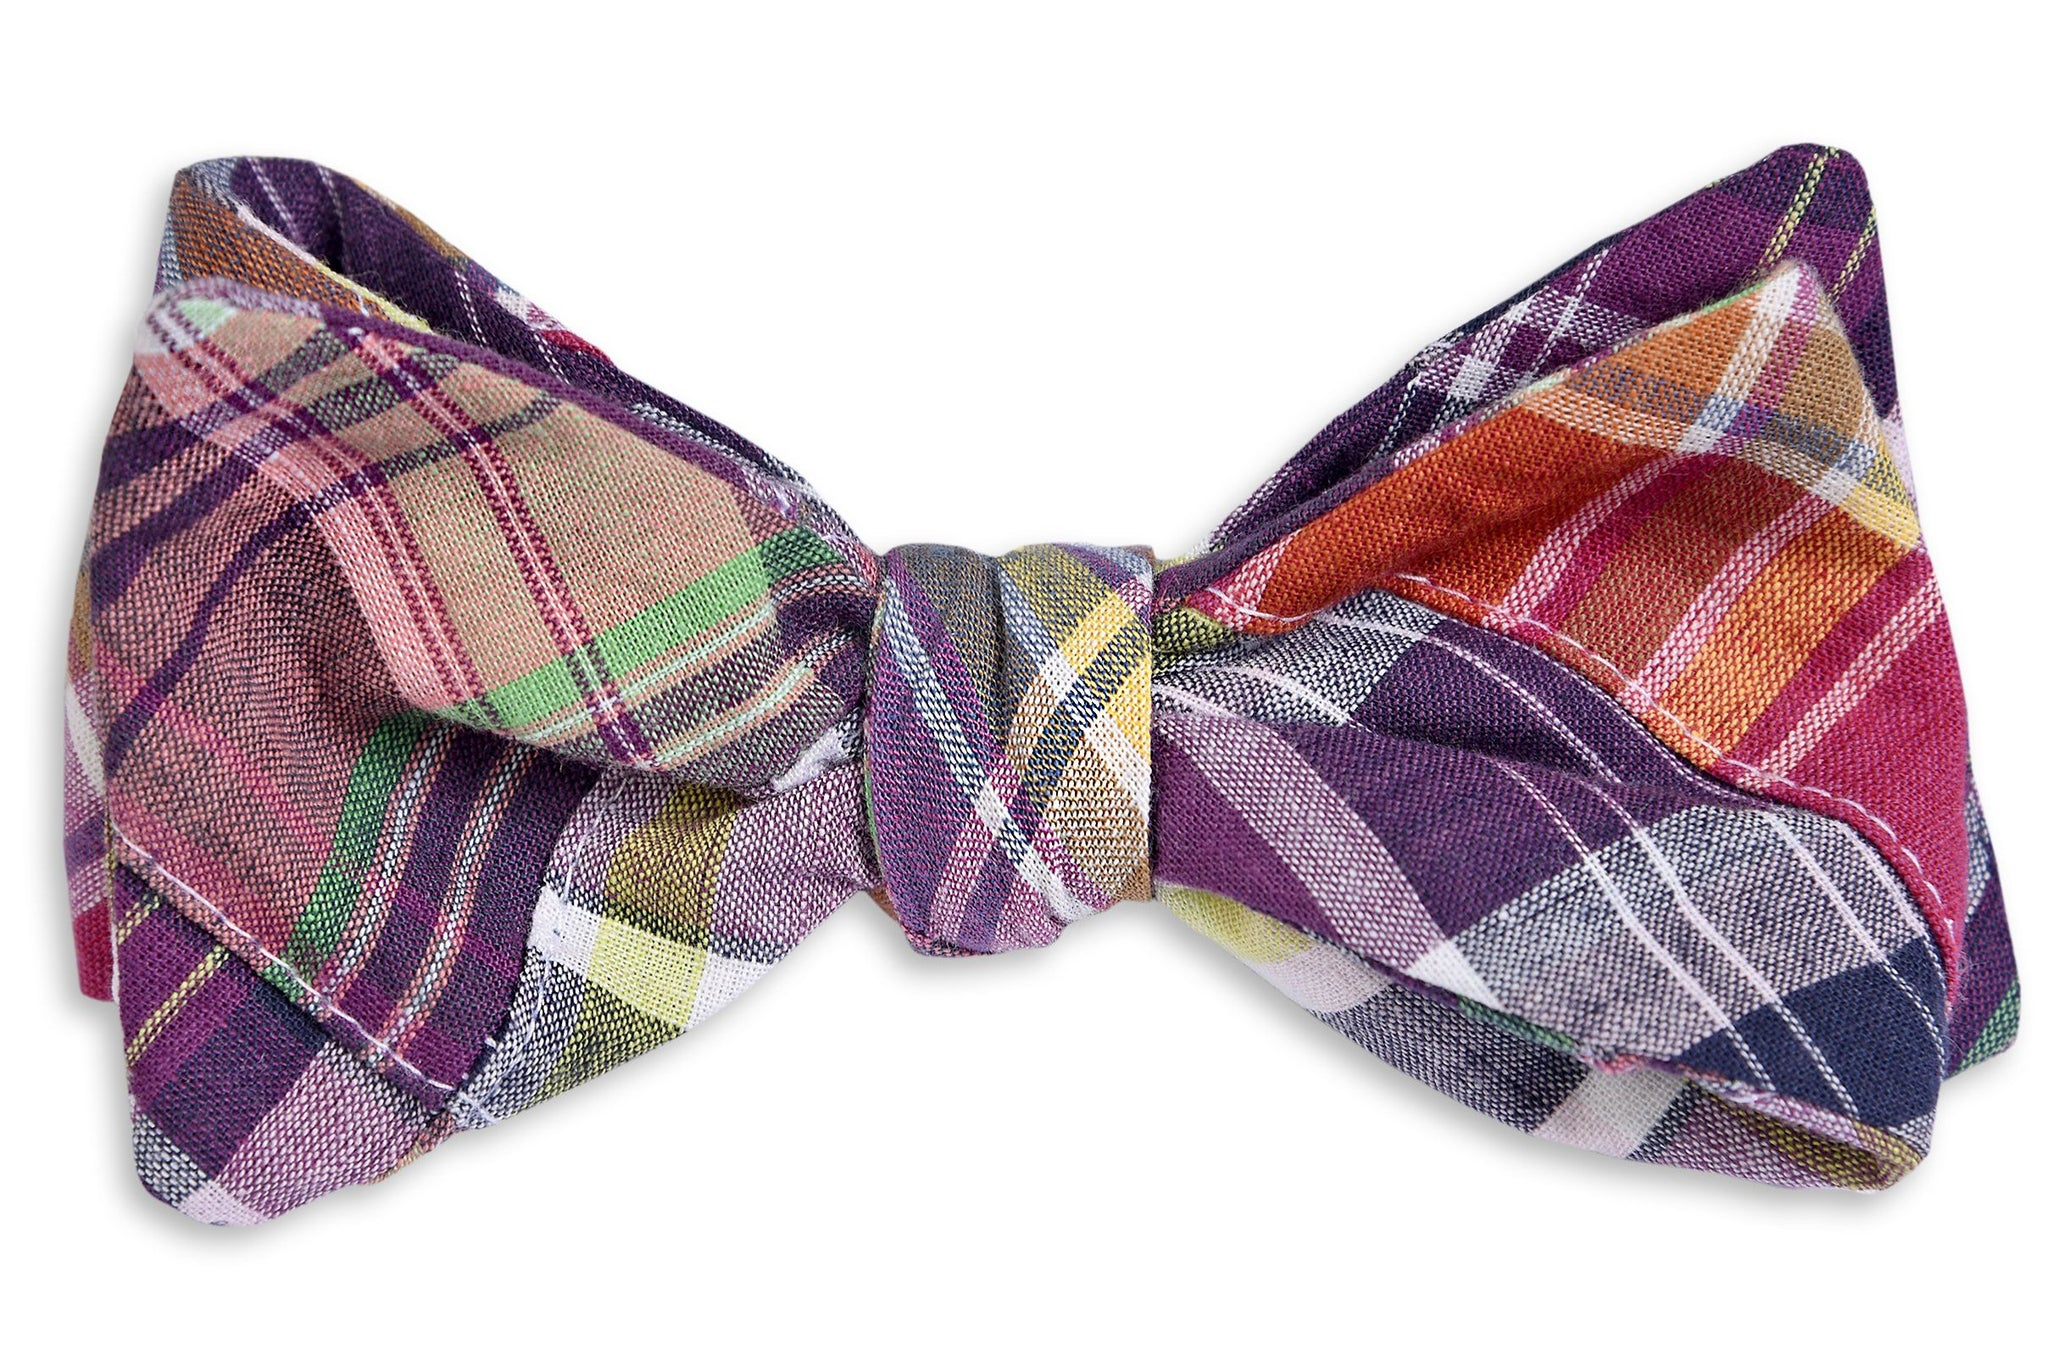 b3e689d3f6ea High Cotton | Hand Crafted Bow Ties, Cummerbund Sets & Accessories